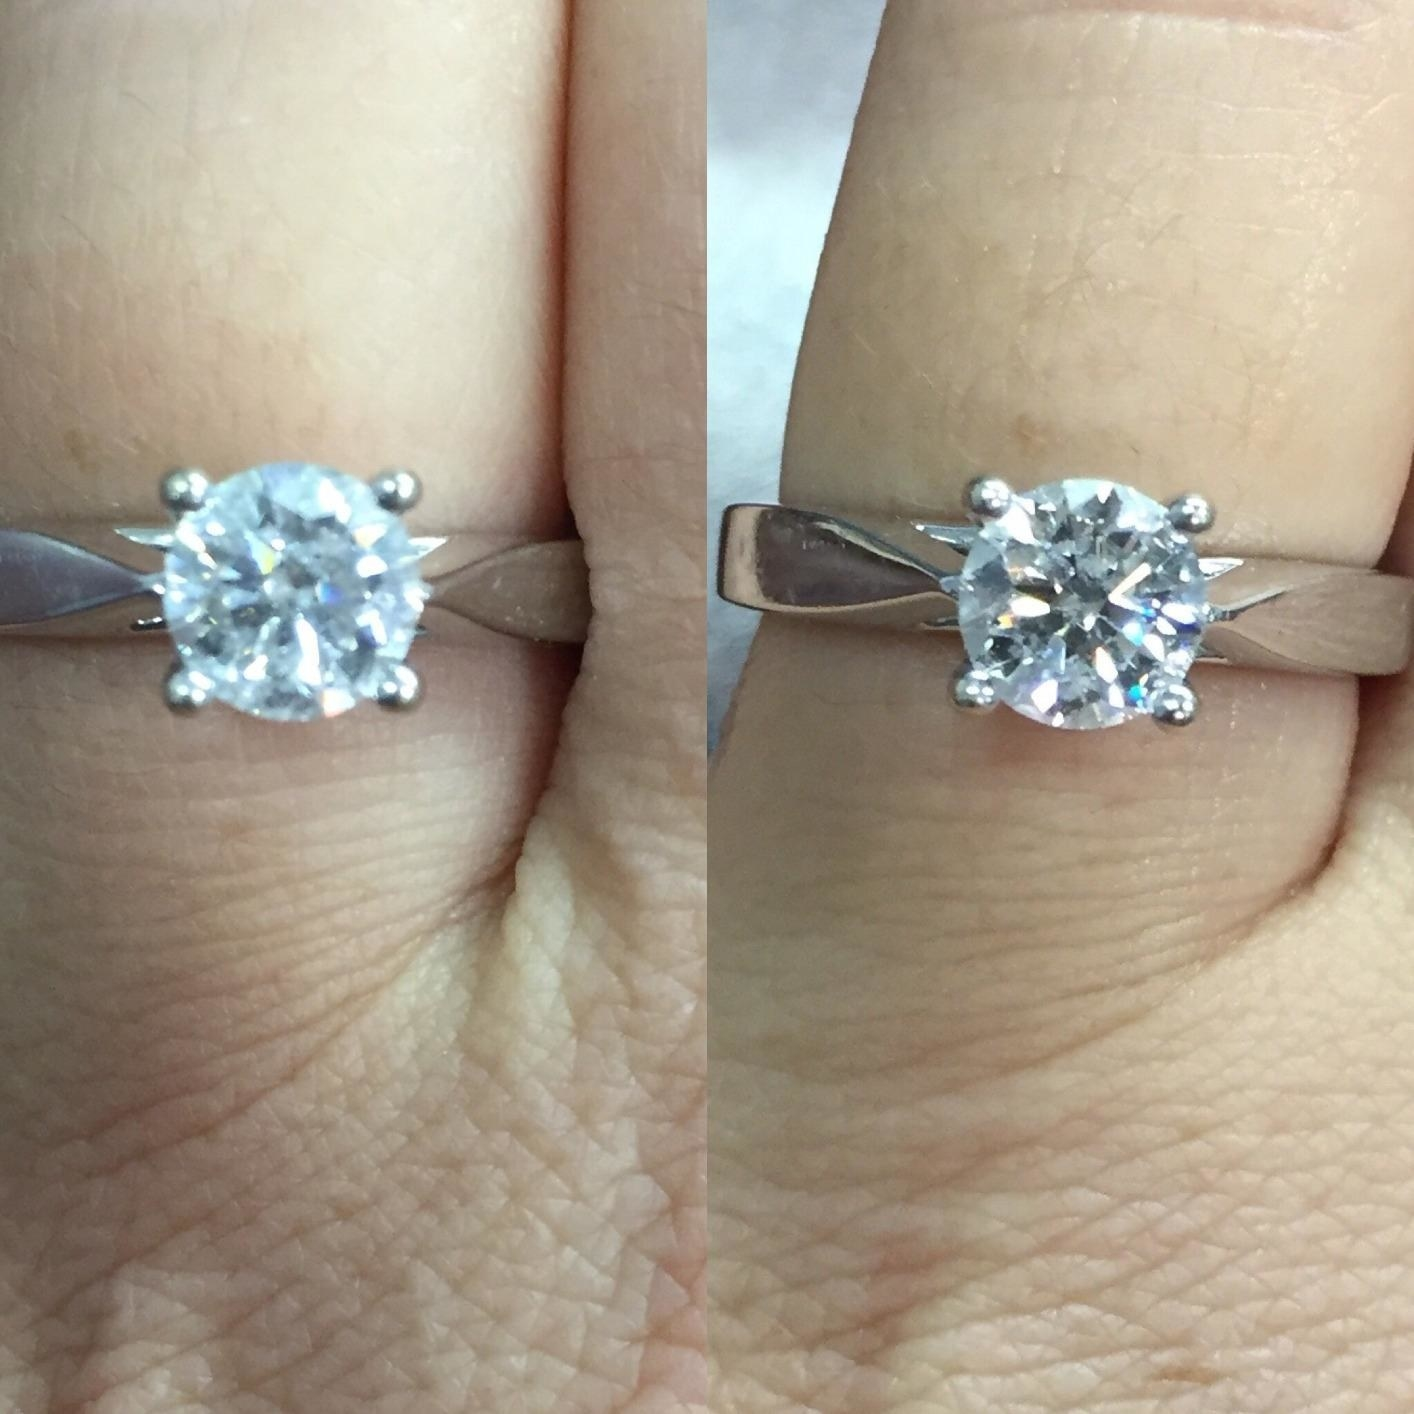 left: cloudy diamond ring right: much clearer looking diamond